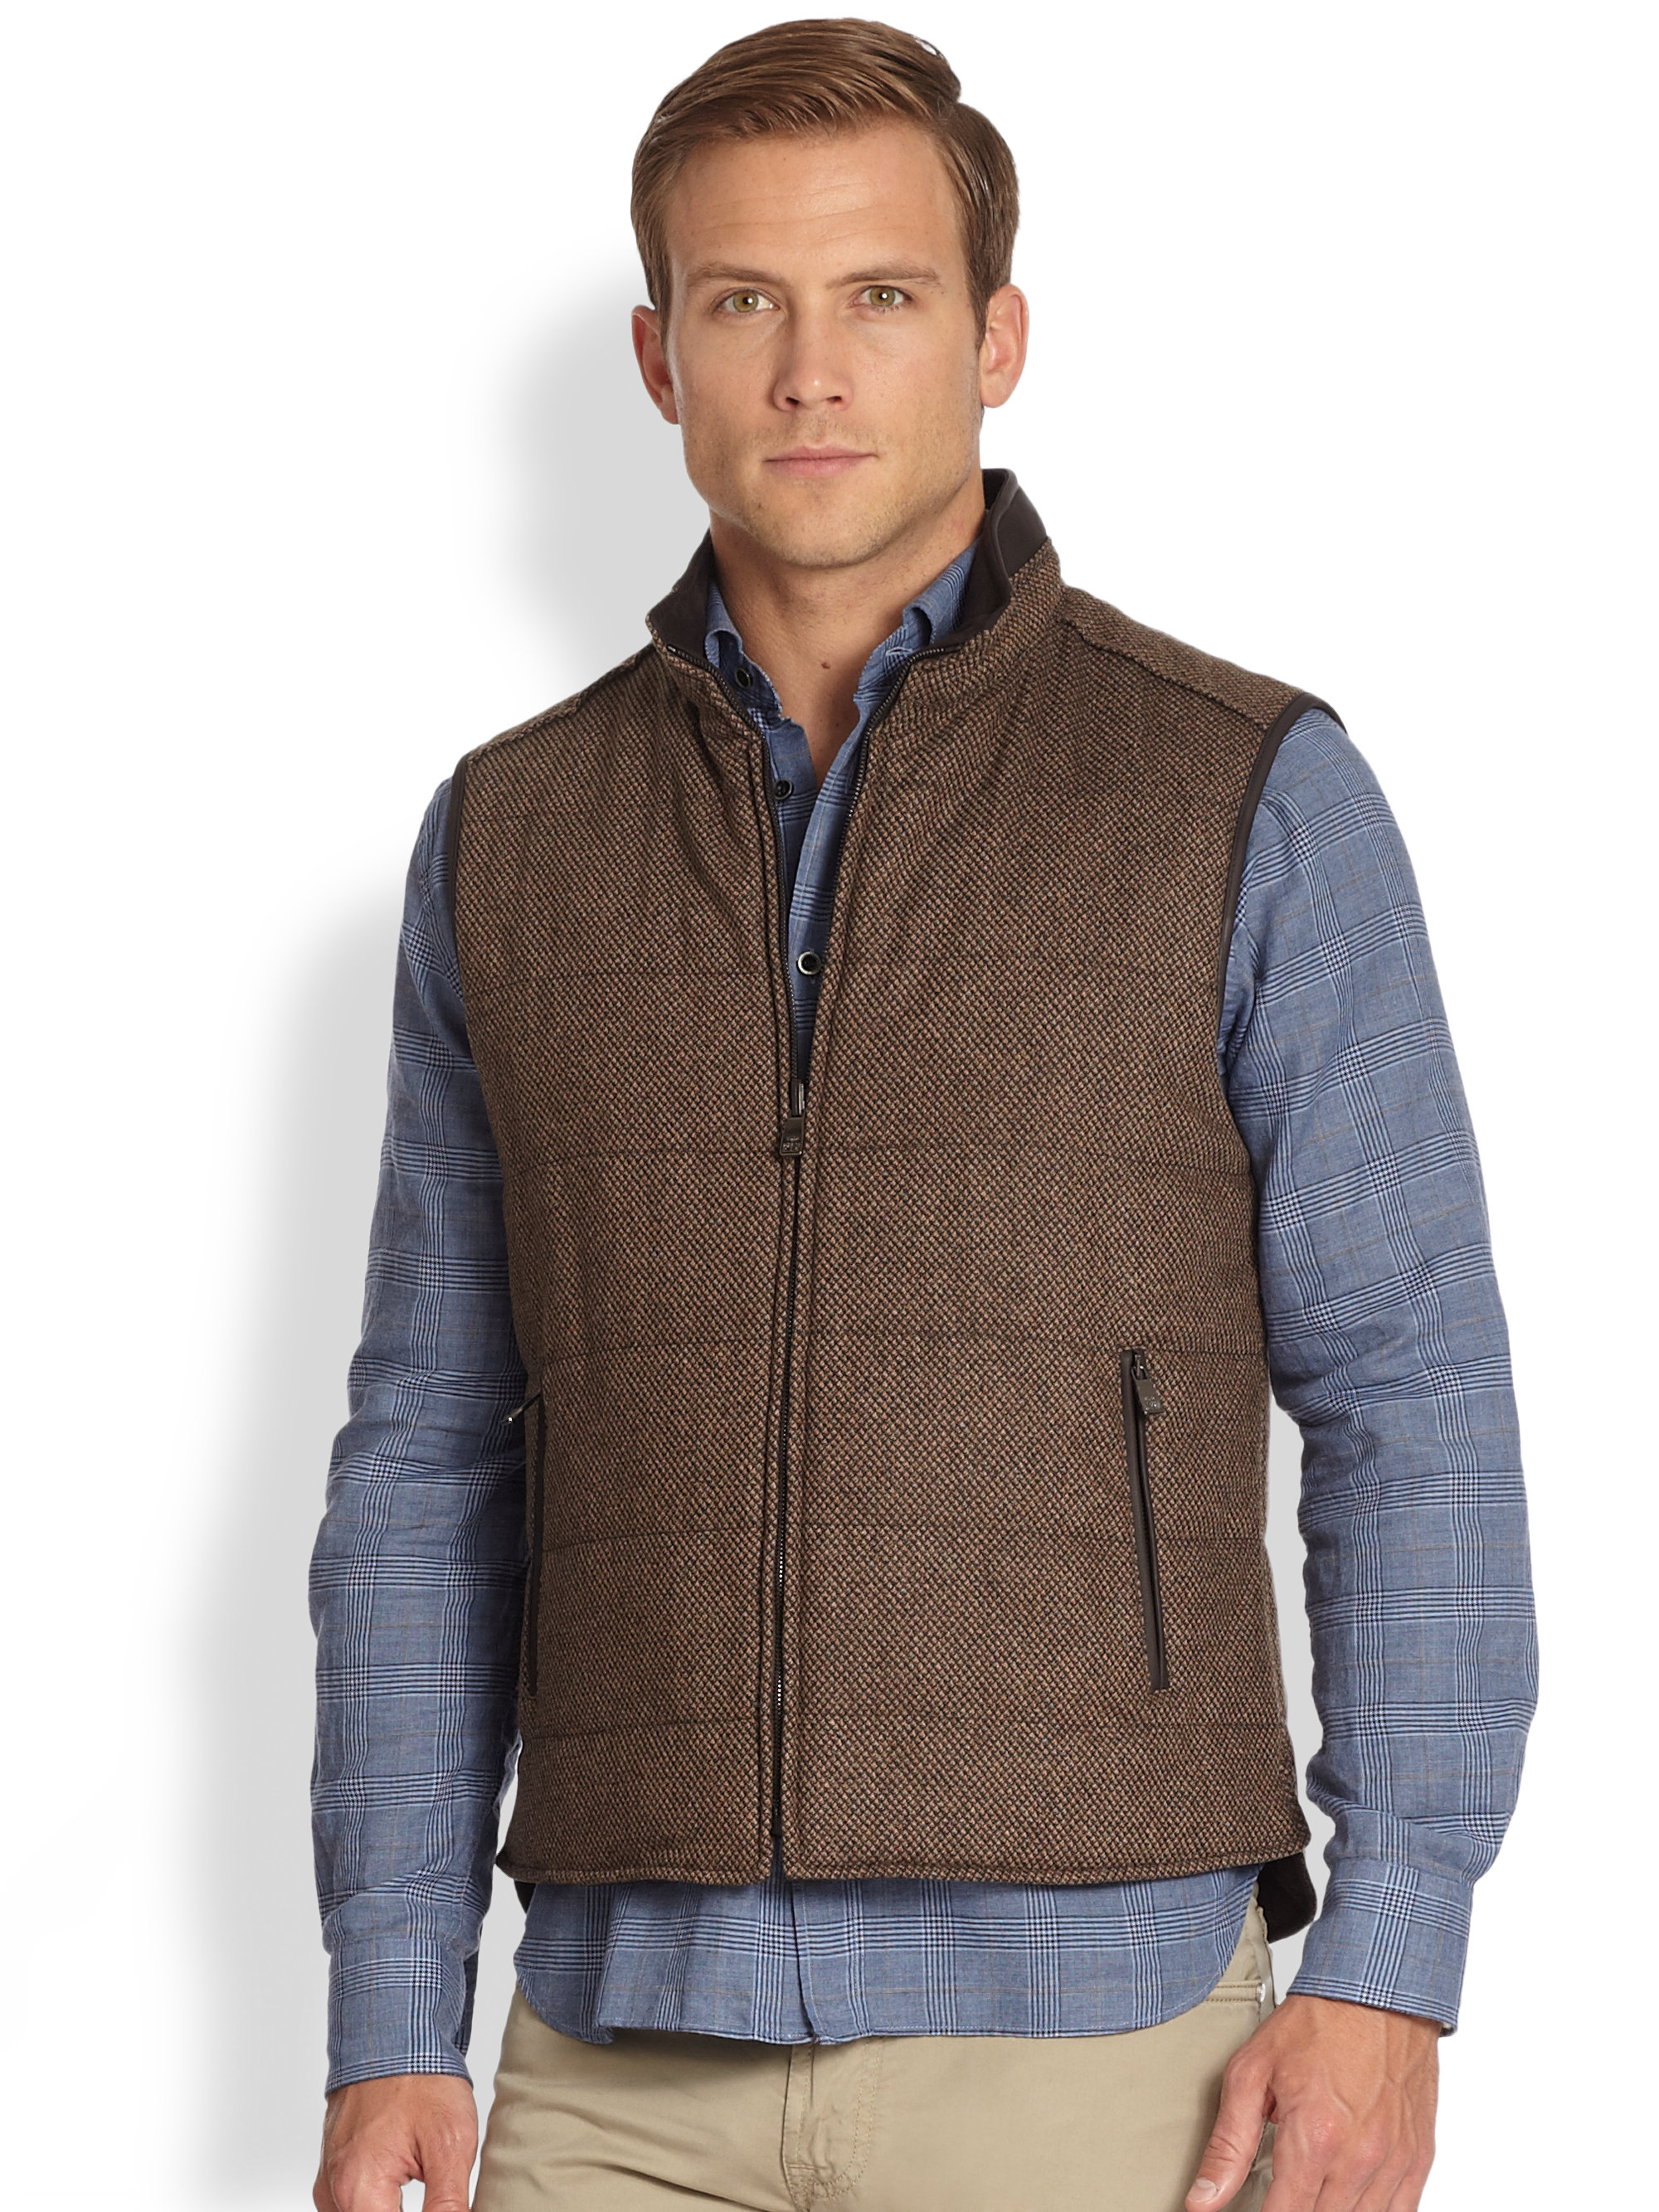 Tweed Vests Tweed is naturally durable, insulating and practical - the perfect fabric for a vest. With traditional British designs trending on the international fashion scene, tweed truly is enjoying its moment.